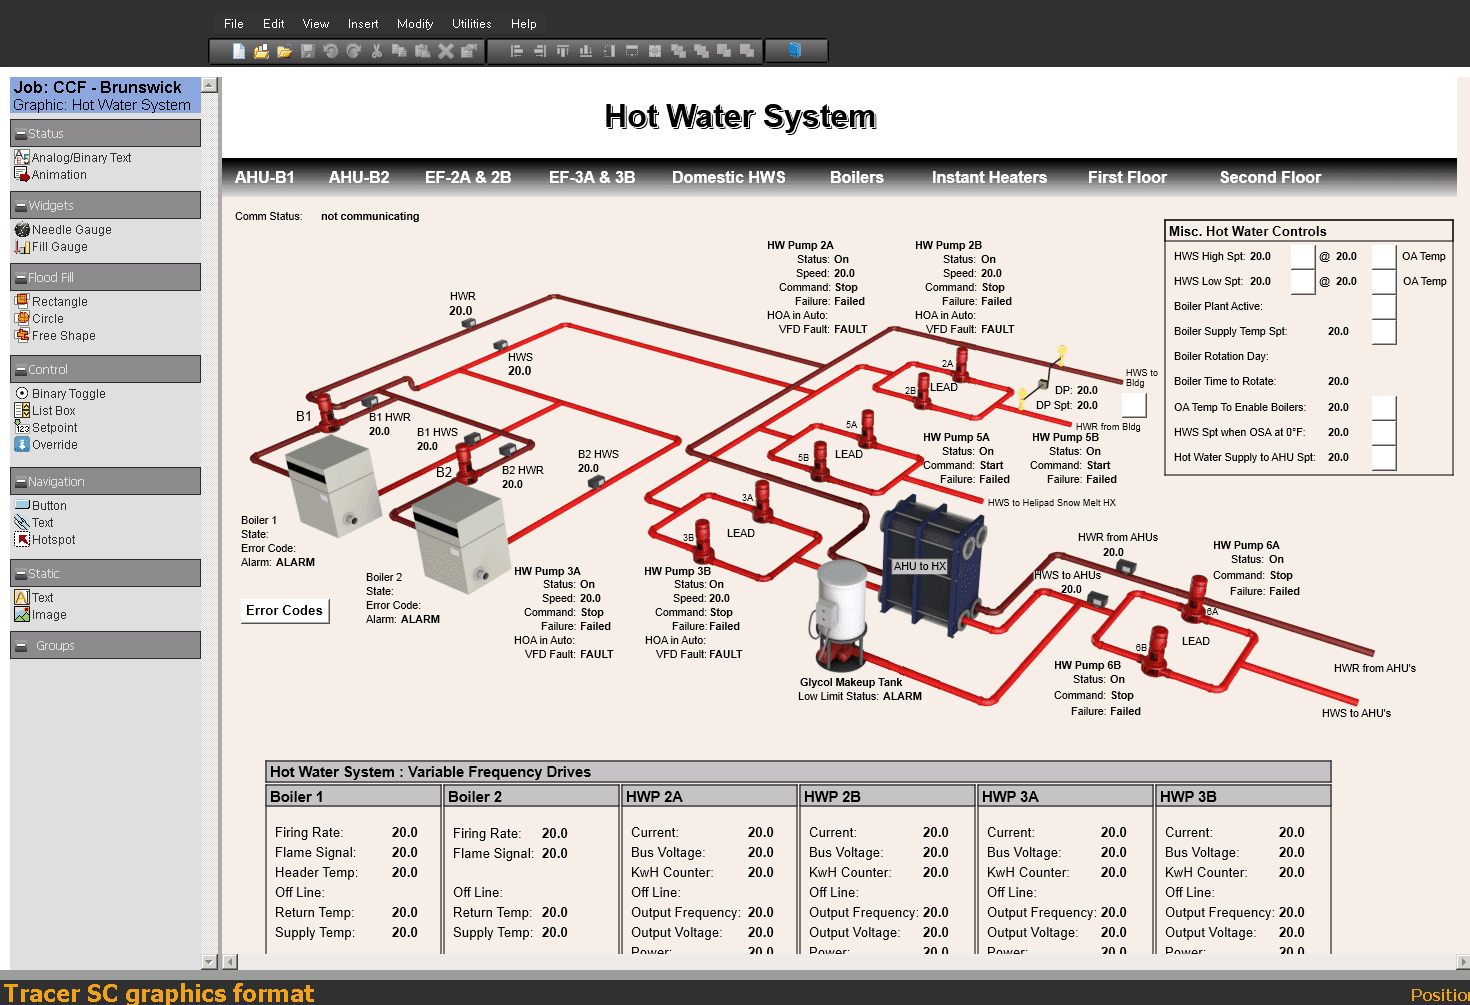 BAS Graphics showing hot water system